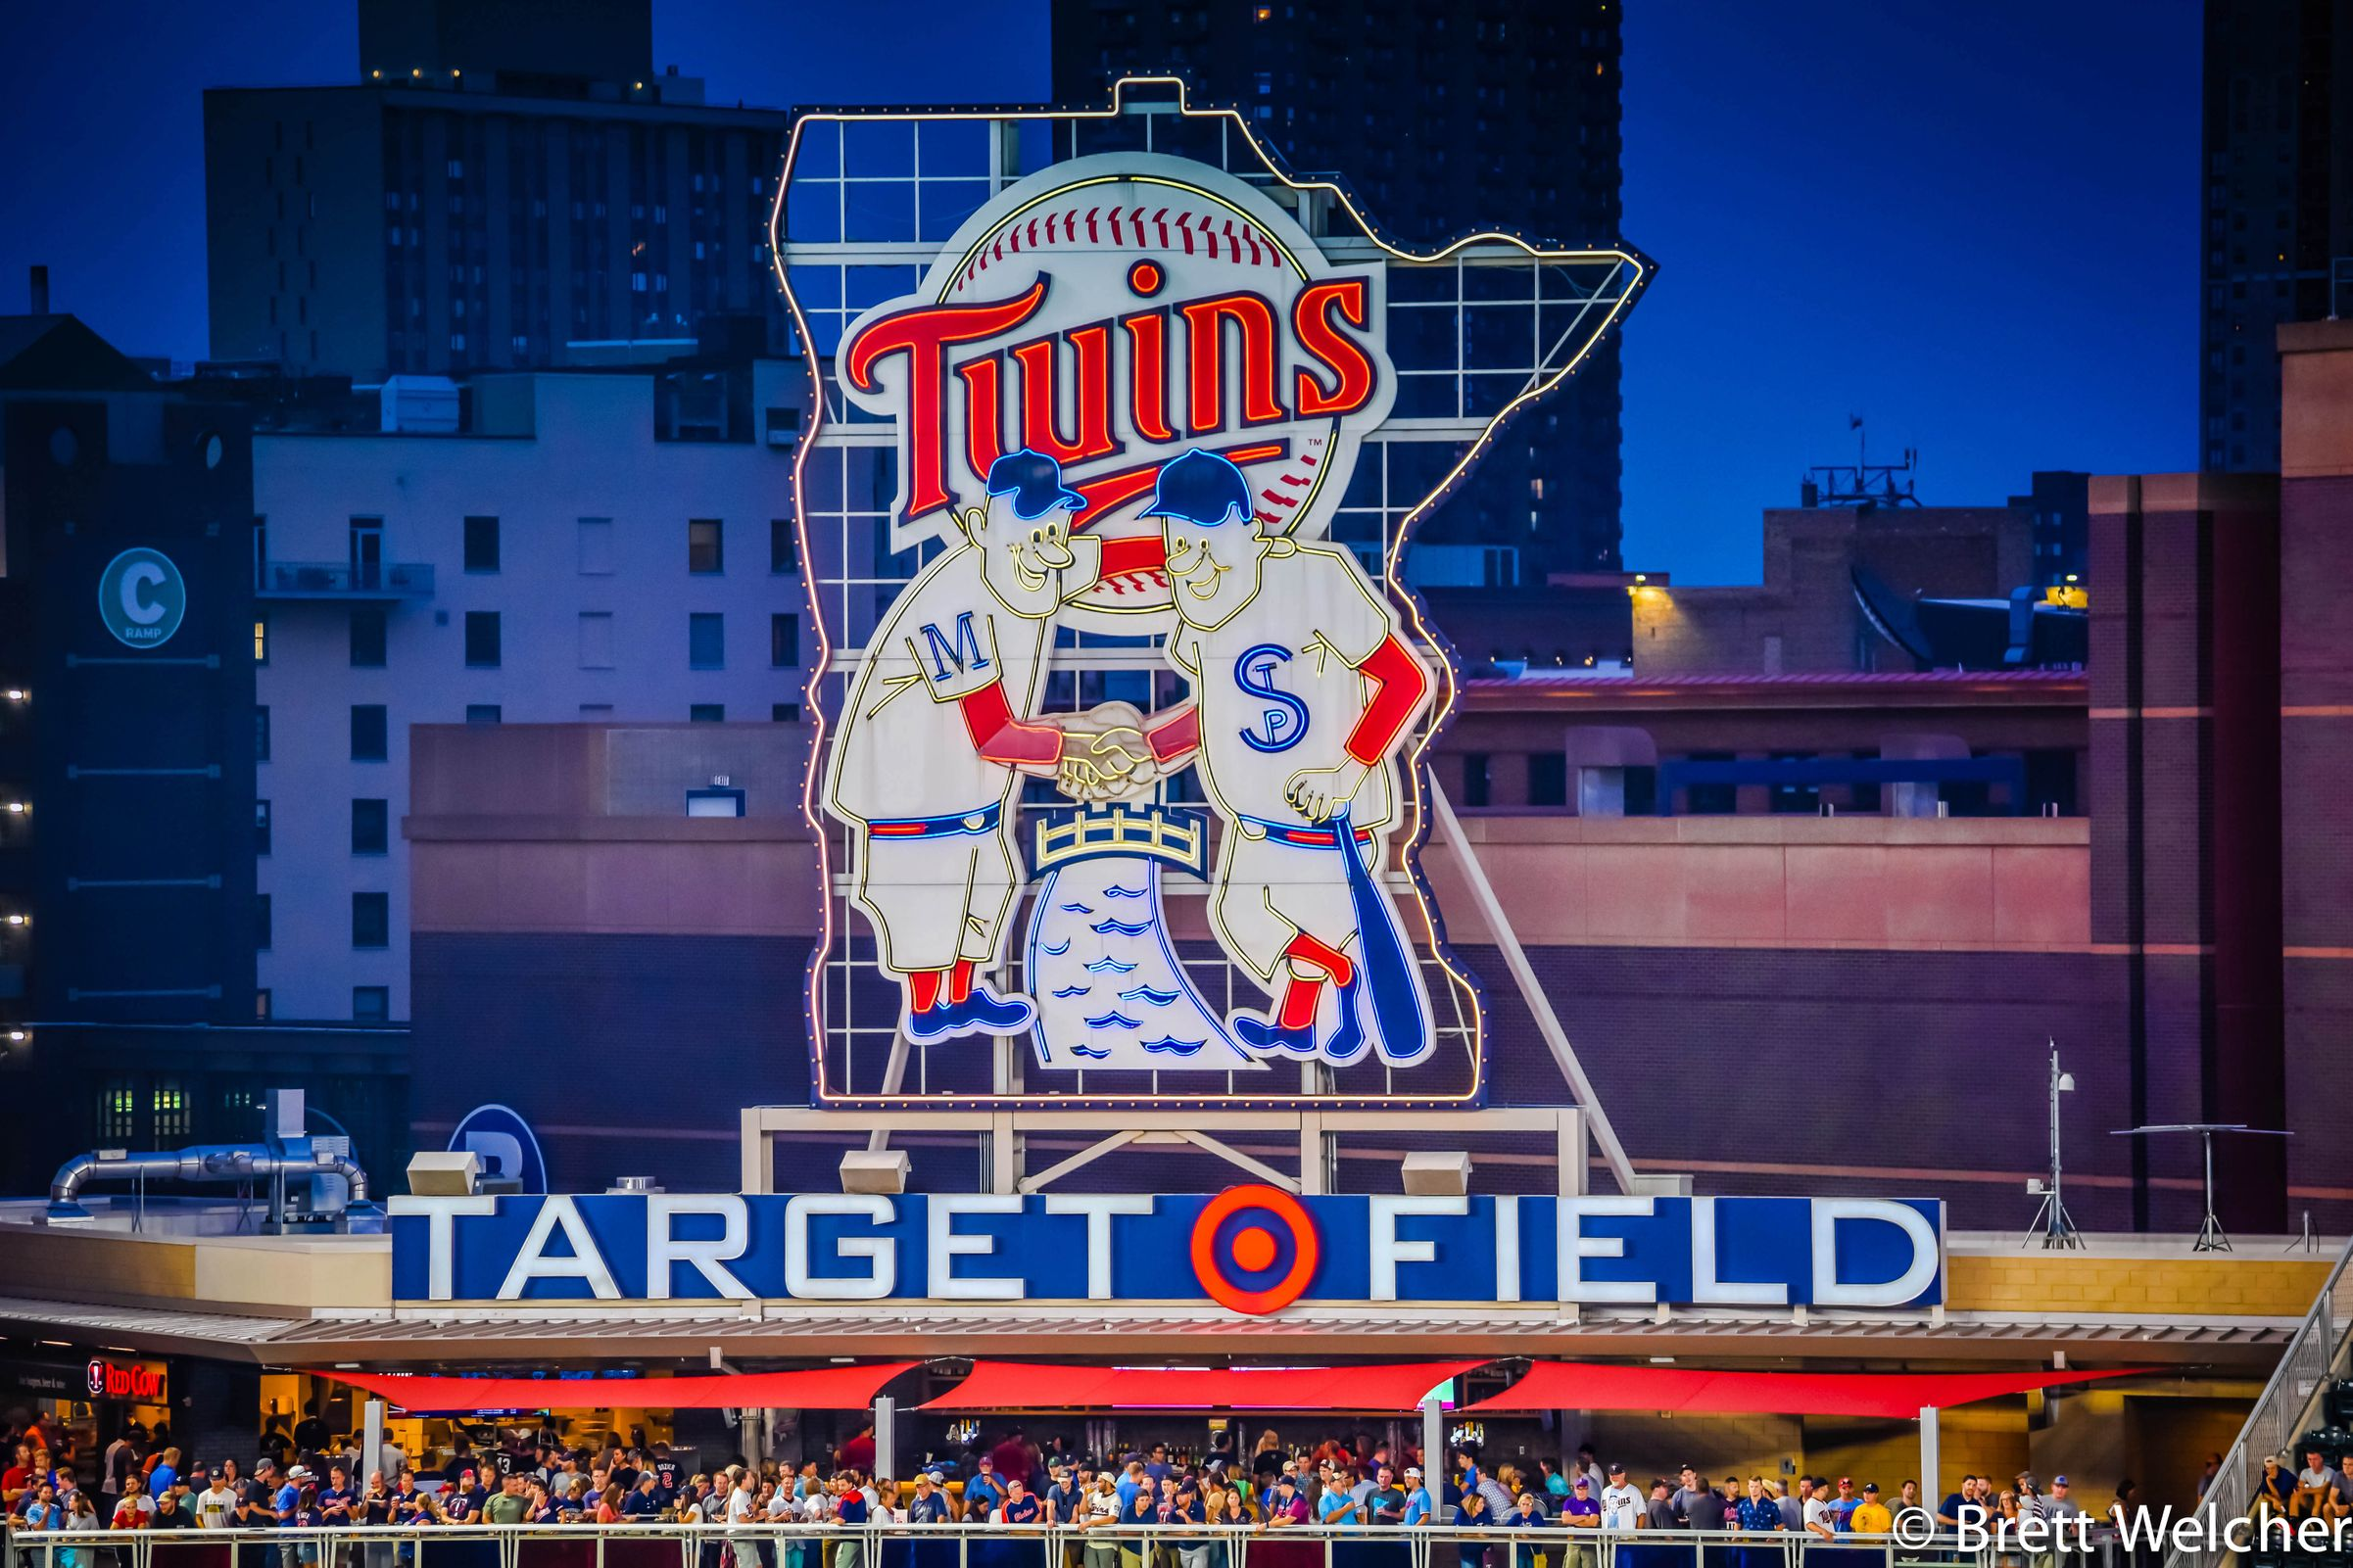 Target Field - Minneapolis, Minnesota